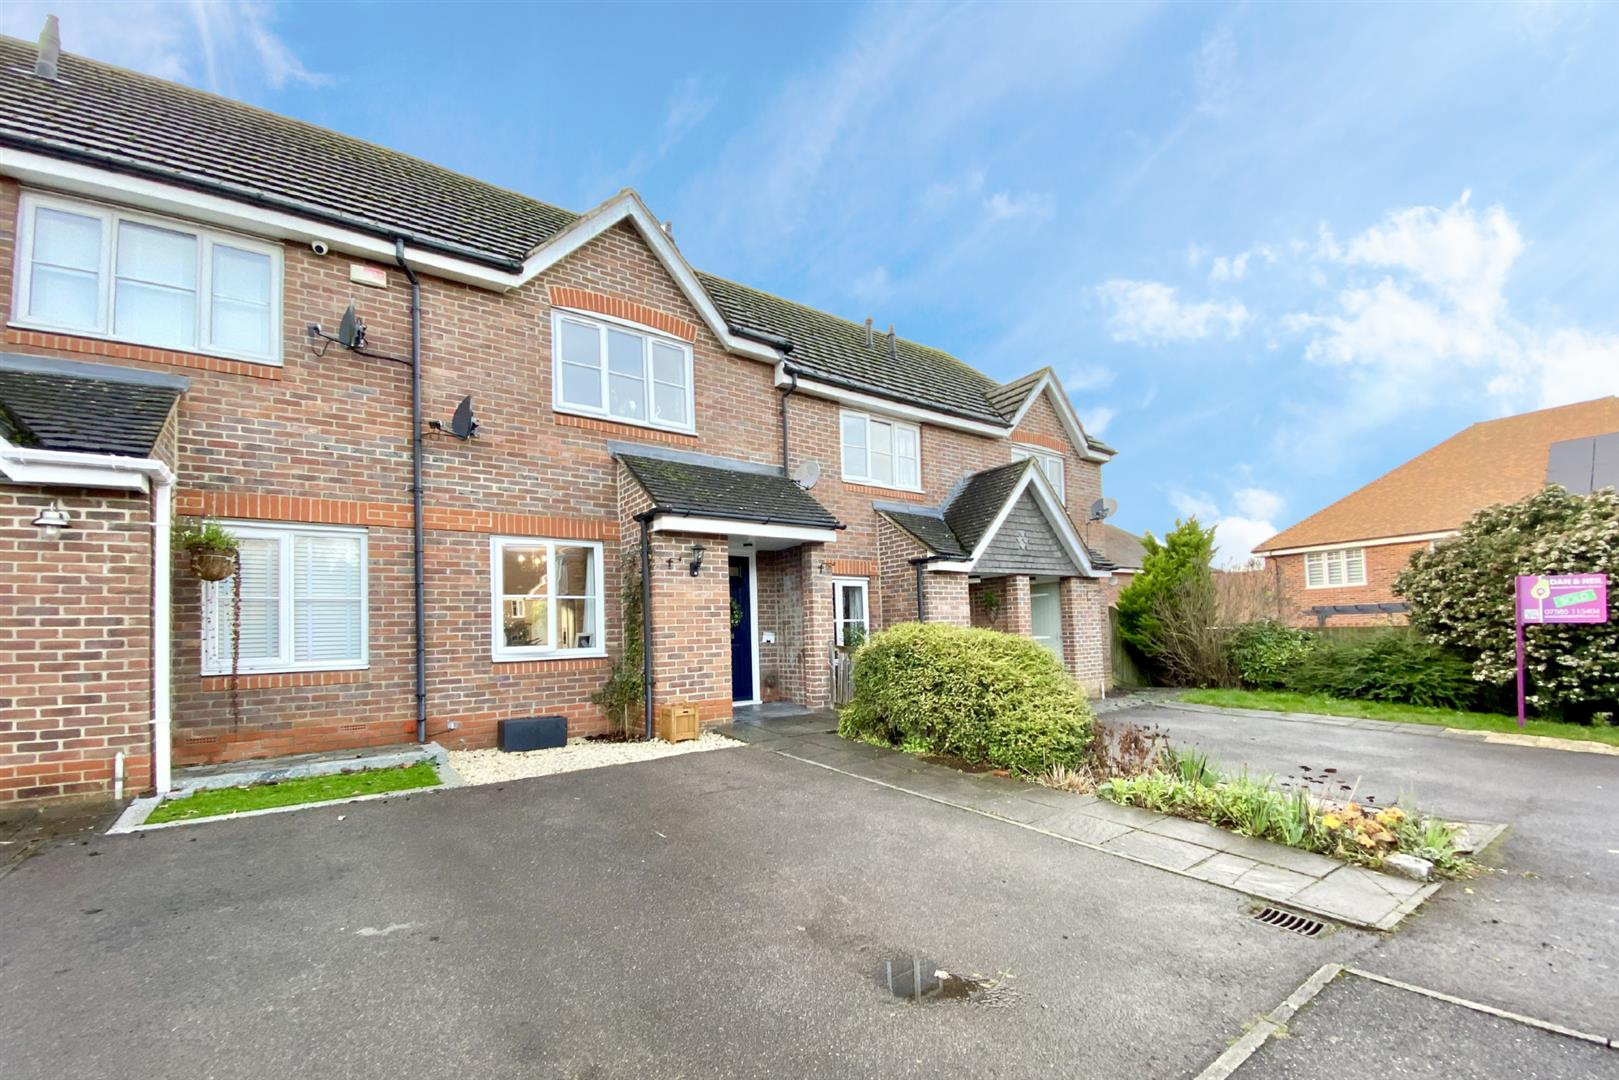 2 bed terraced for sale in Three Mile Cross 1